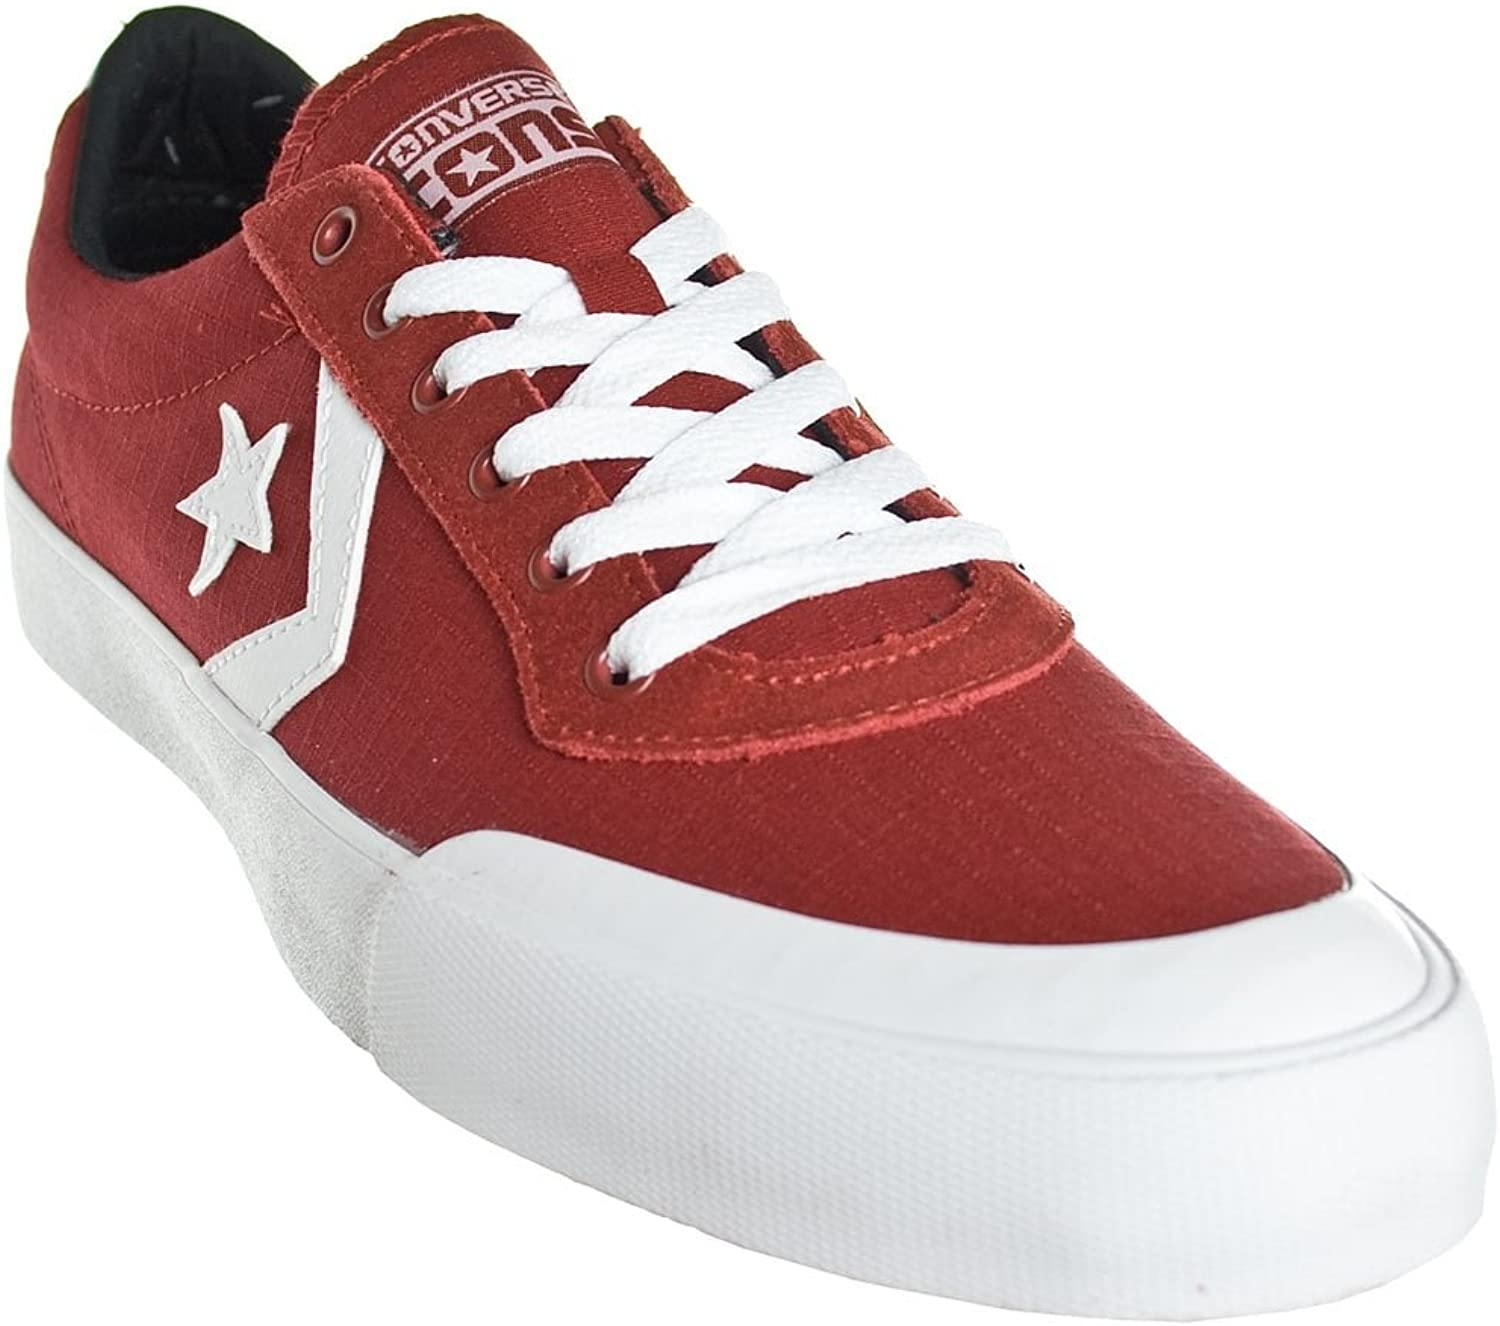 Converse Storrow Ox Sneakers Red